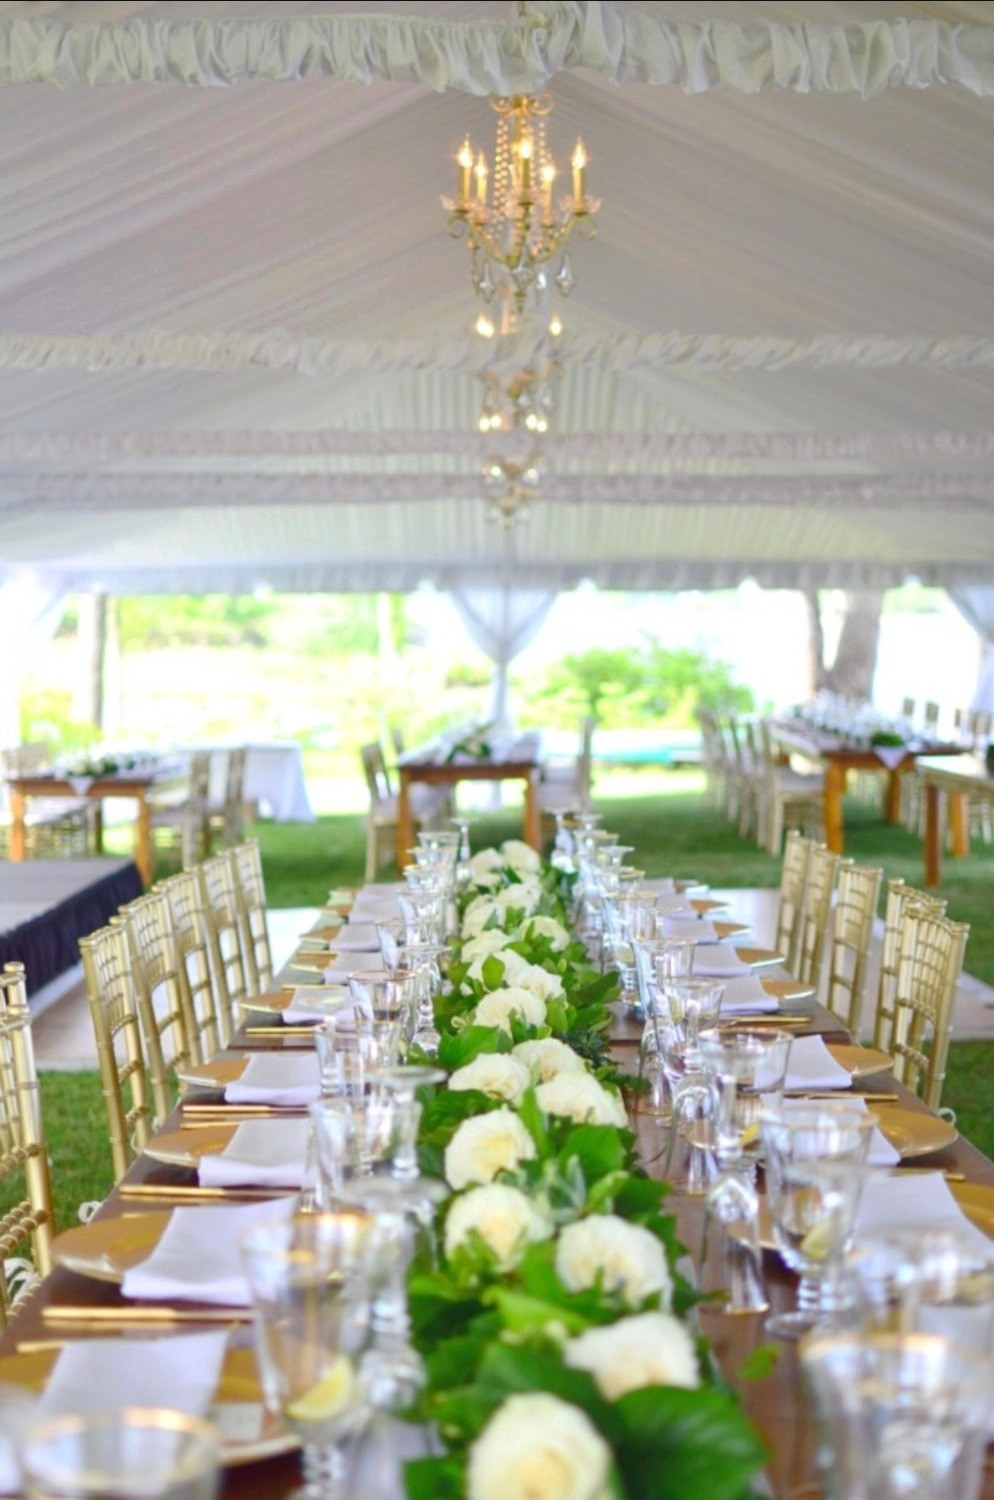 Green garlands centerpieces with white Roses